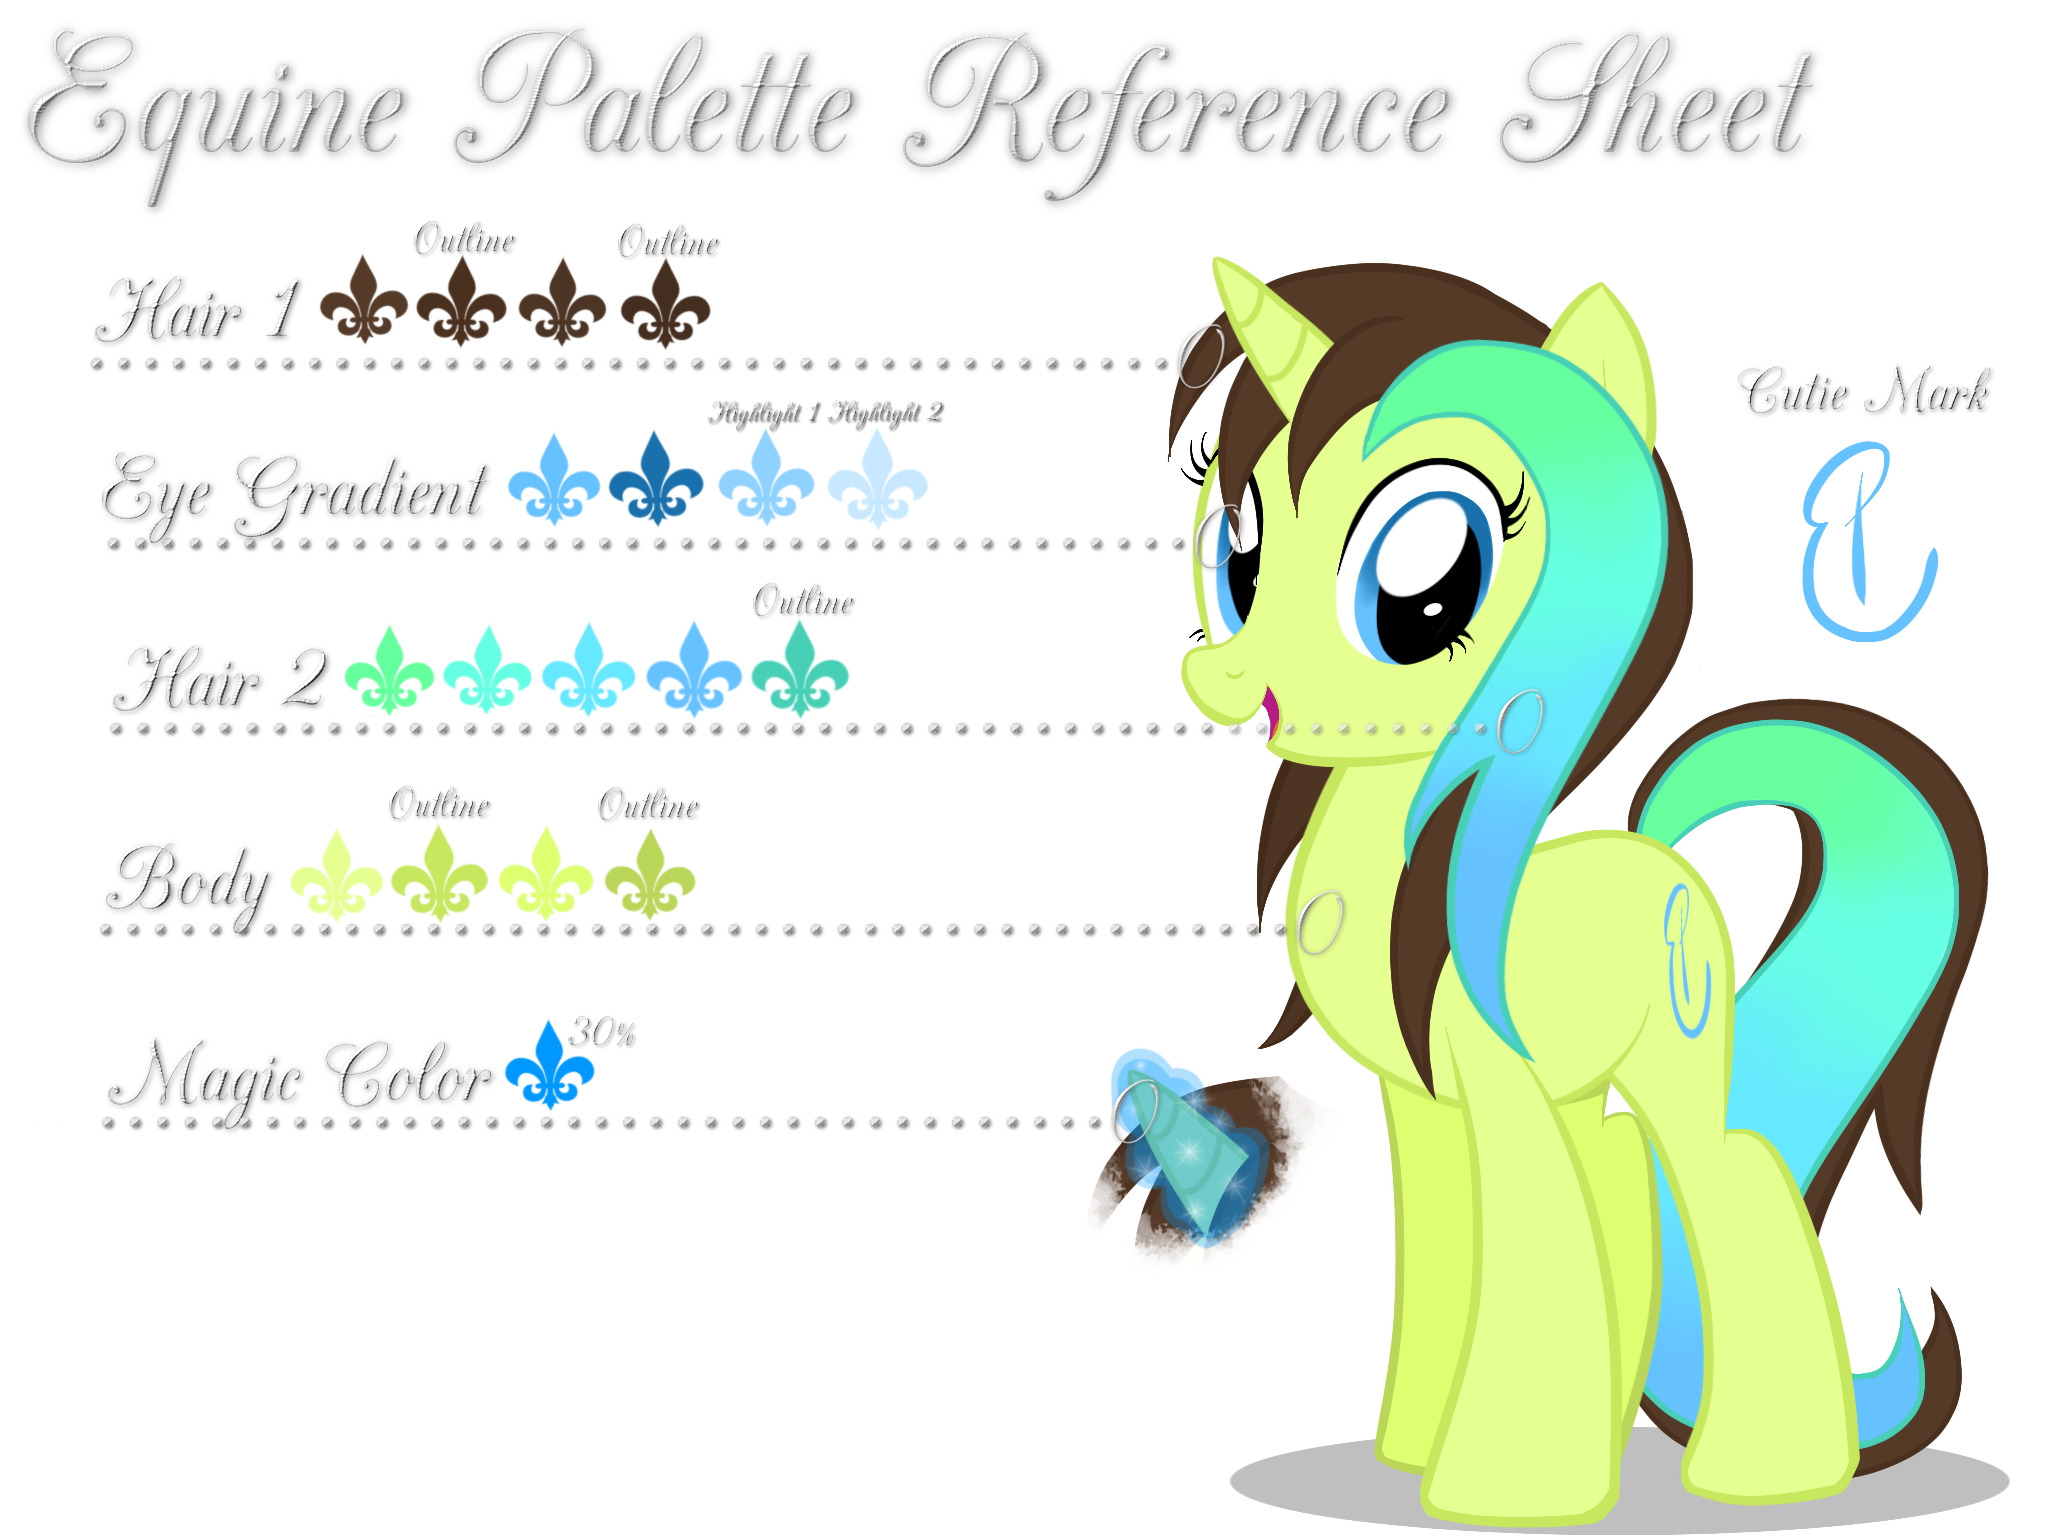 Equine Palette Reference Sheet by equinepalette